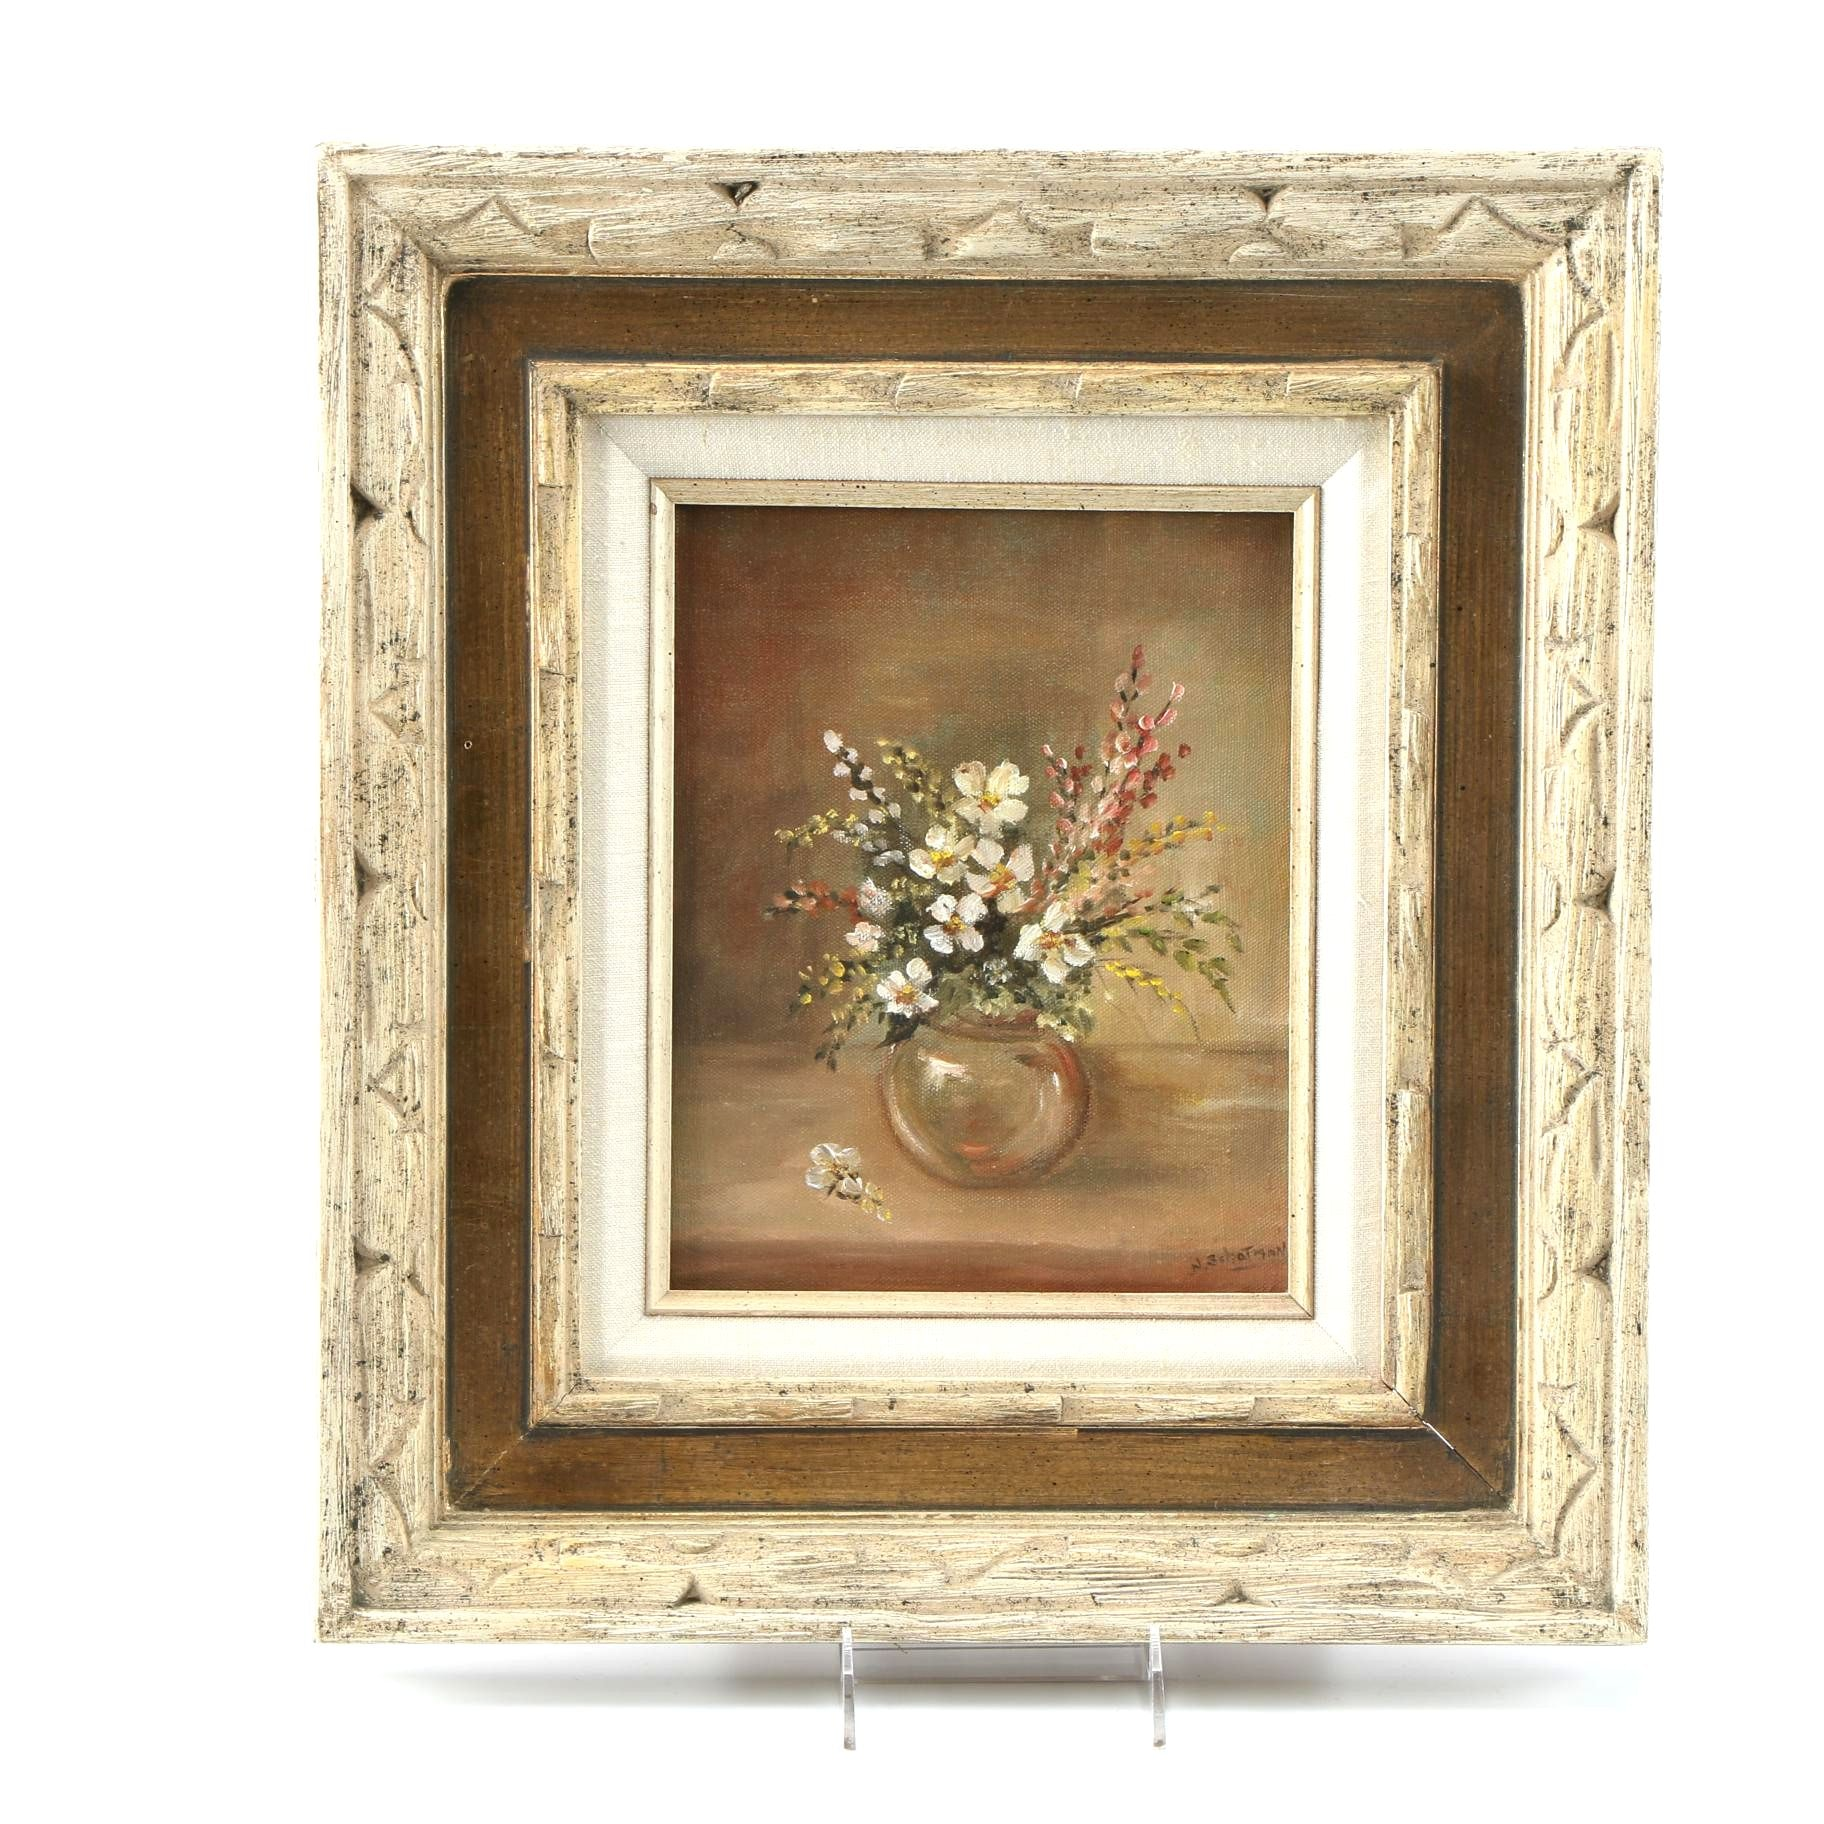 N. Schotman Oil Painting on Canvas of Floral Still Life